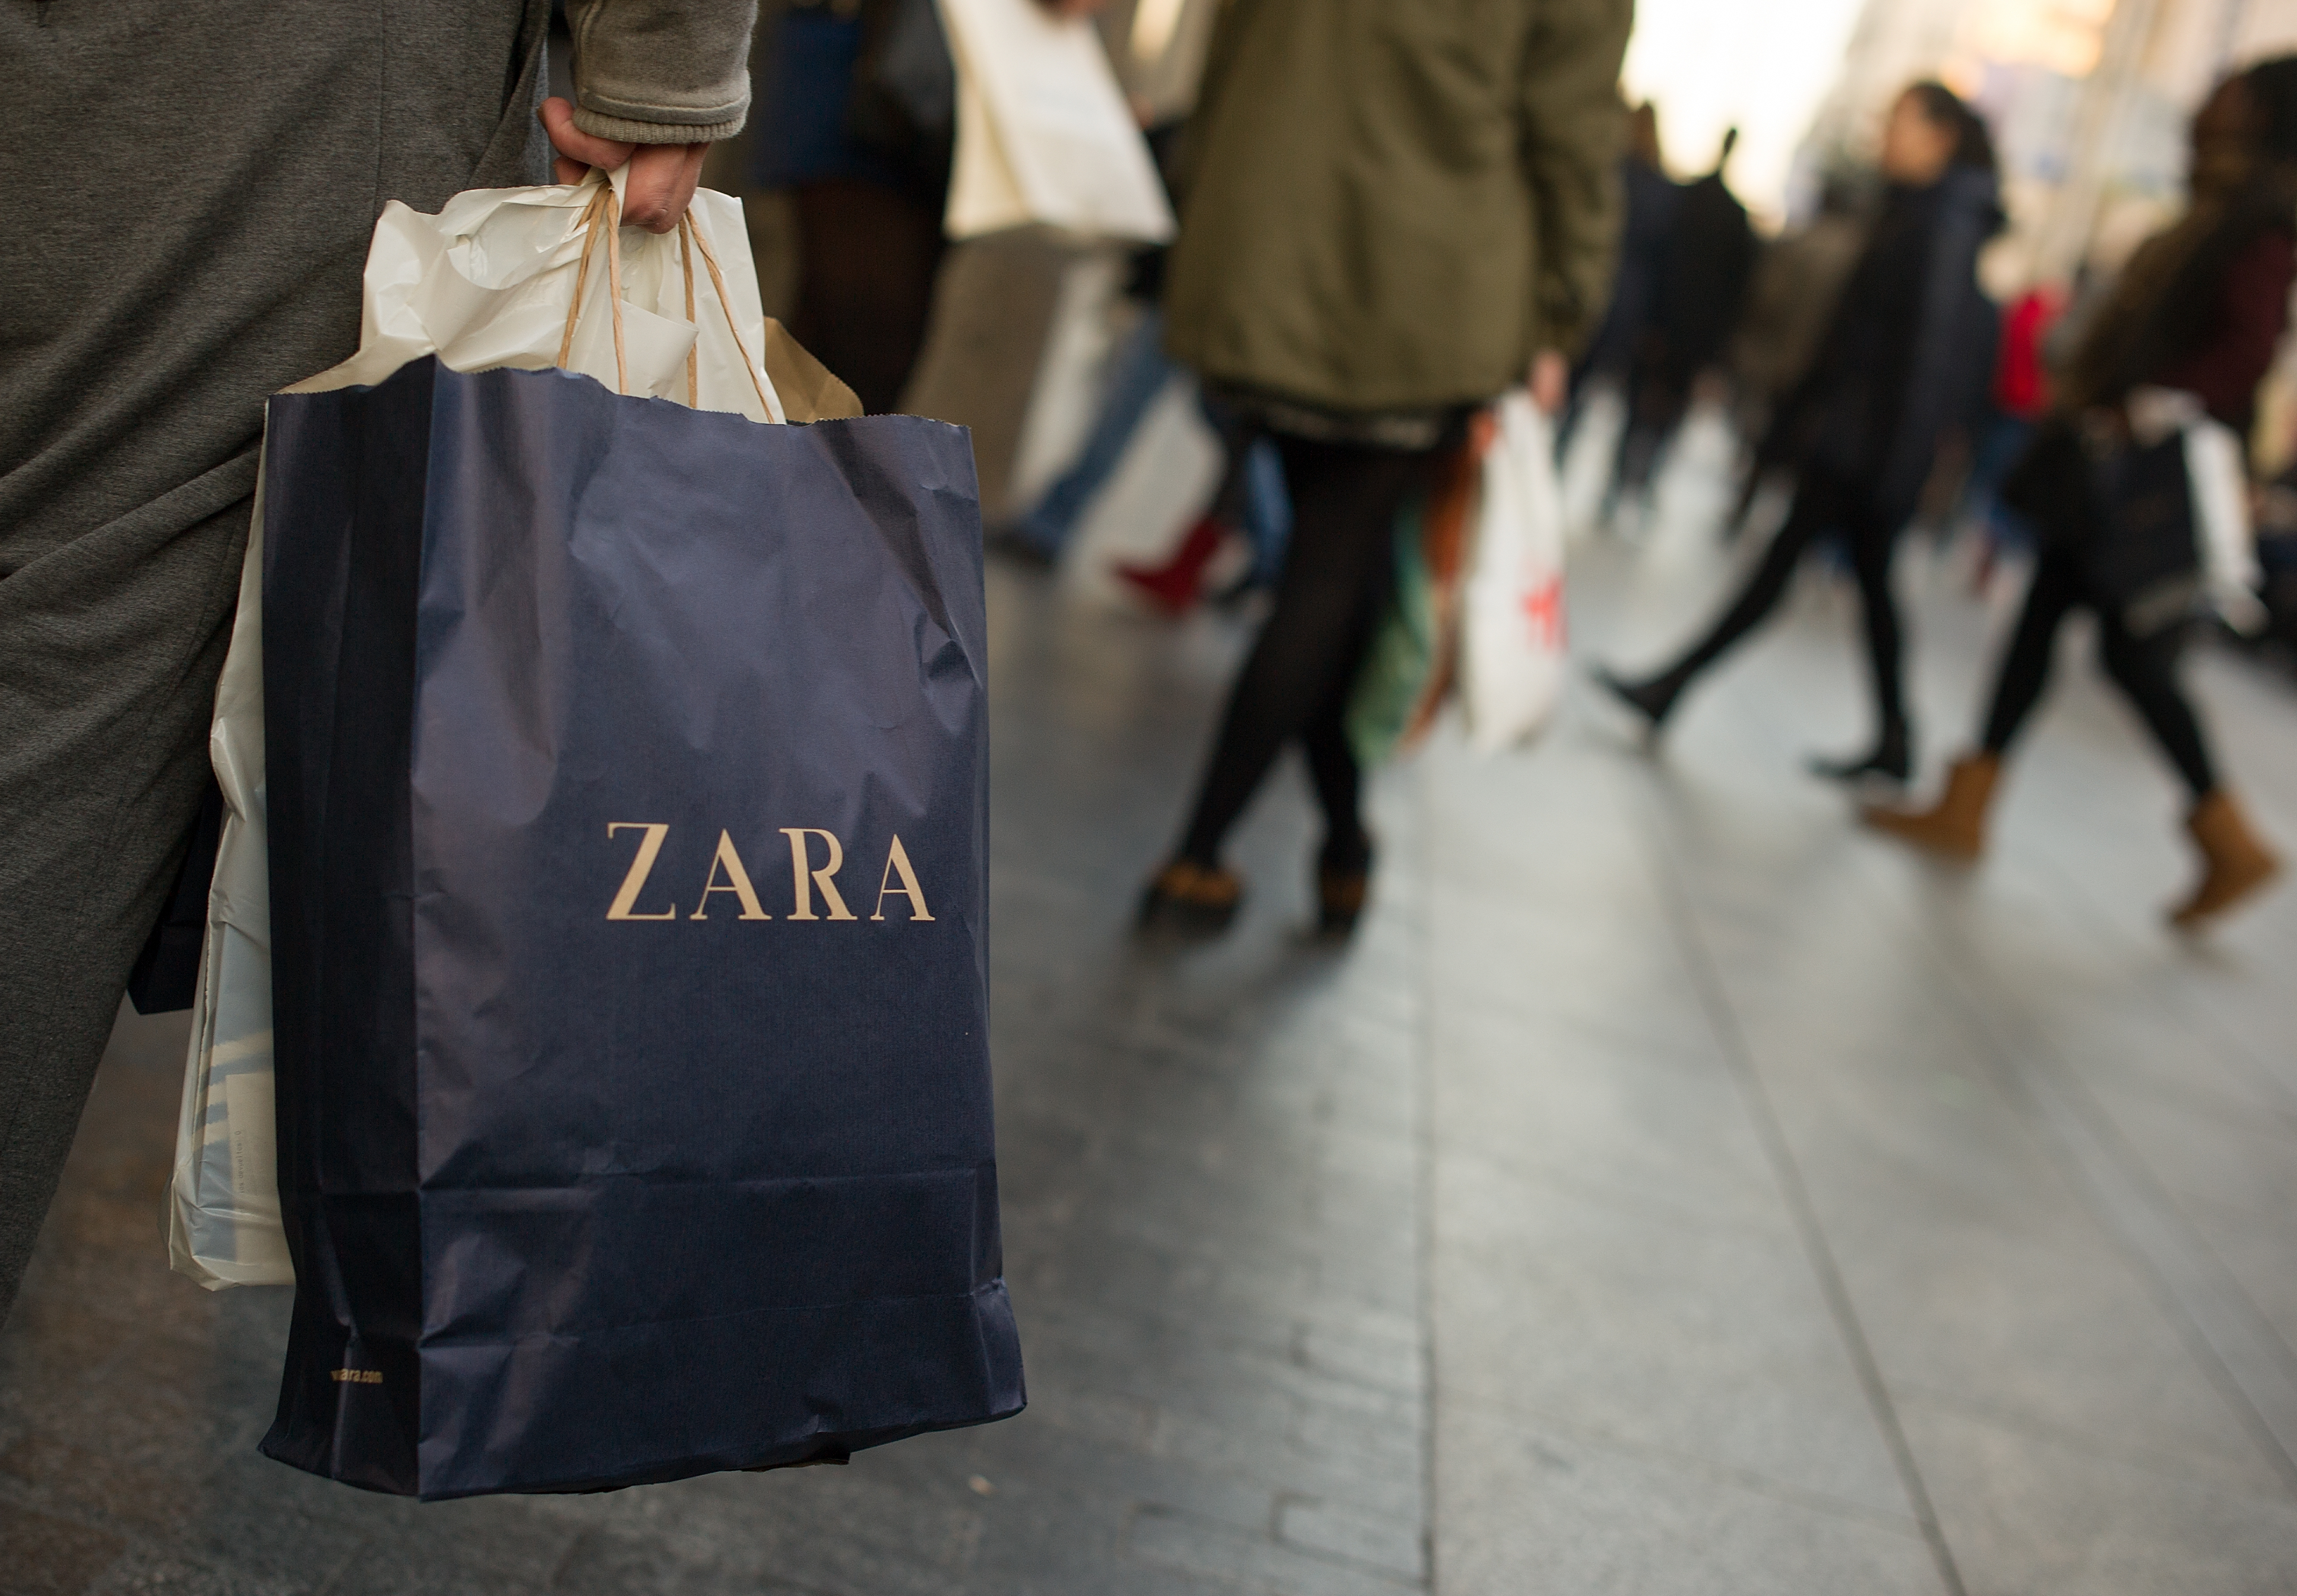 9b993577e6ff Zara Used a Code Word to Allegedly Profile Black Shoppers